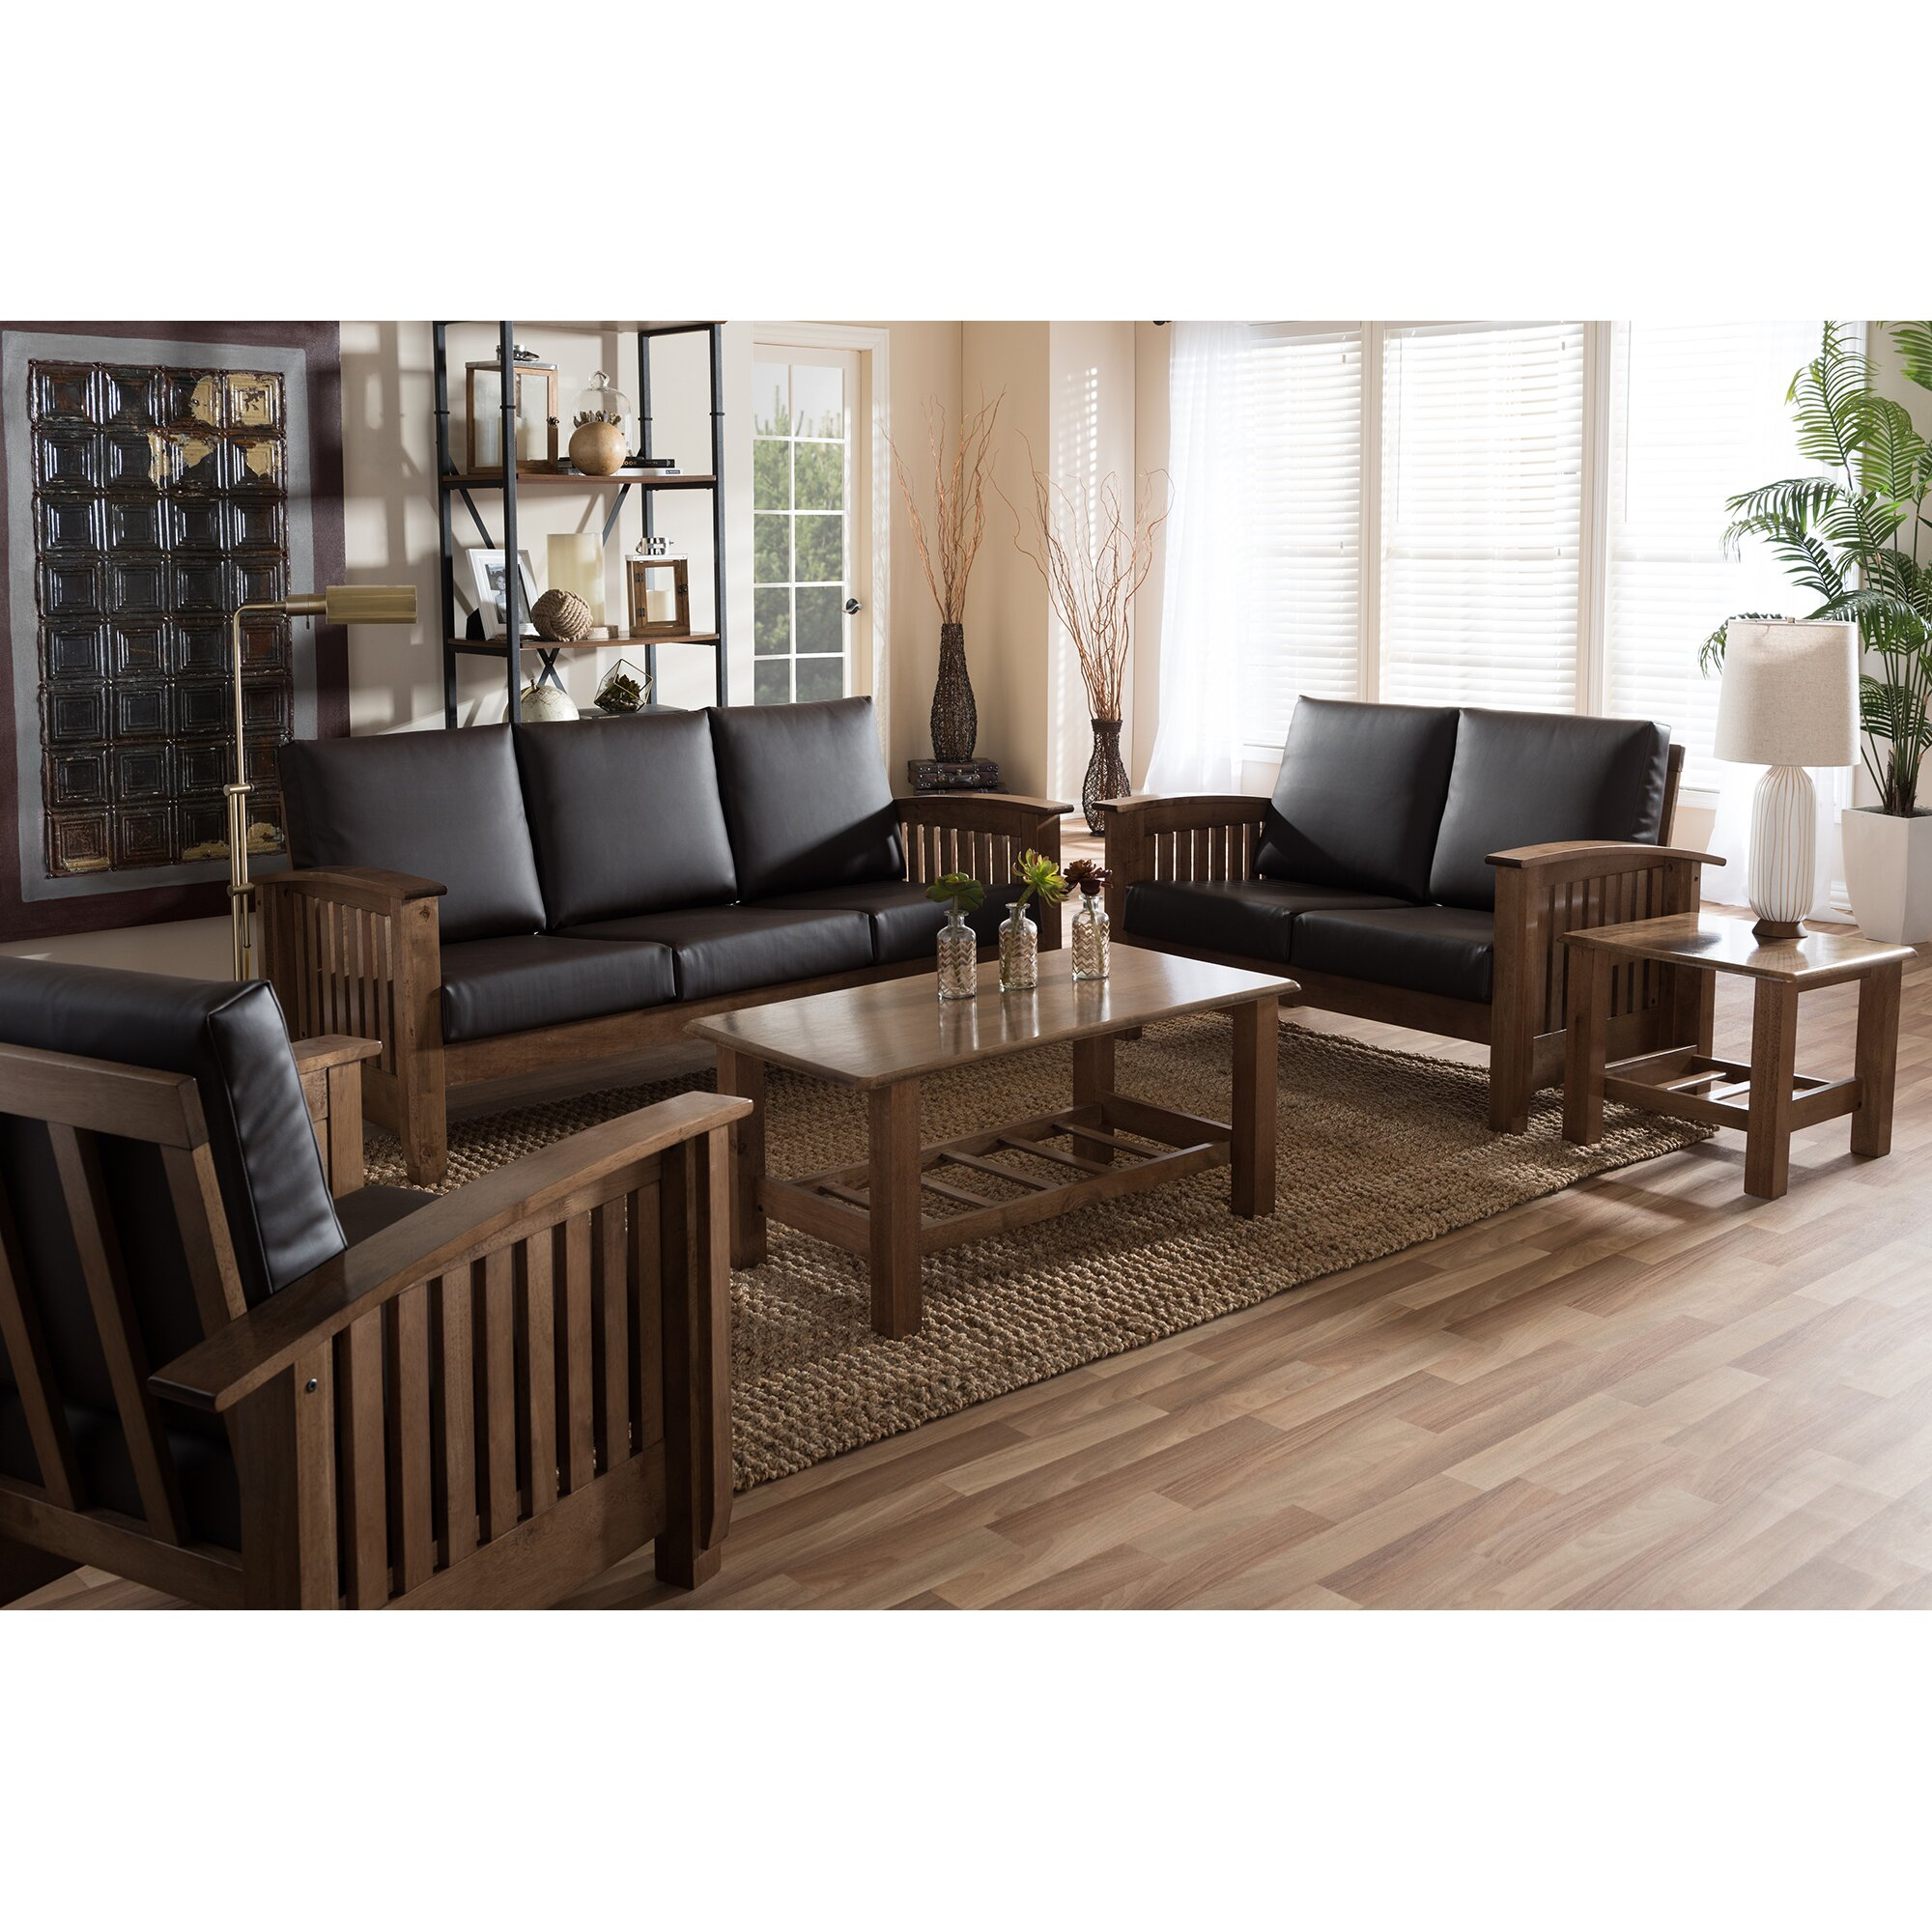 Baxton studio 5 piece living room set wayfair for Wholesale living room furniture sets